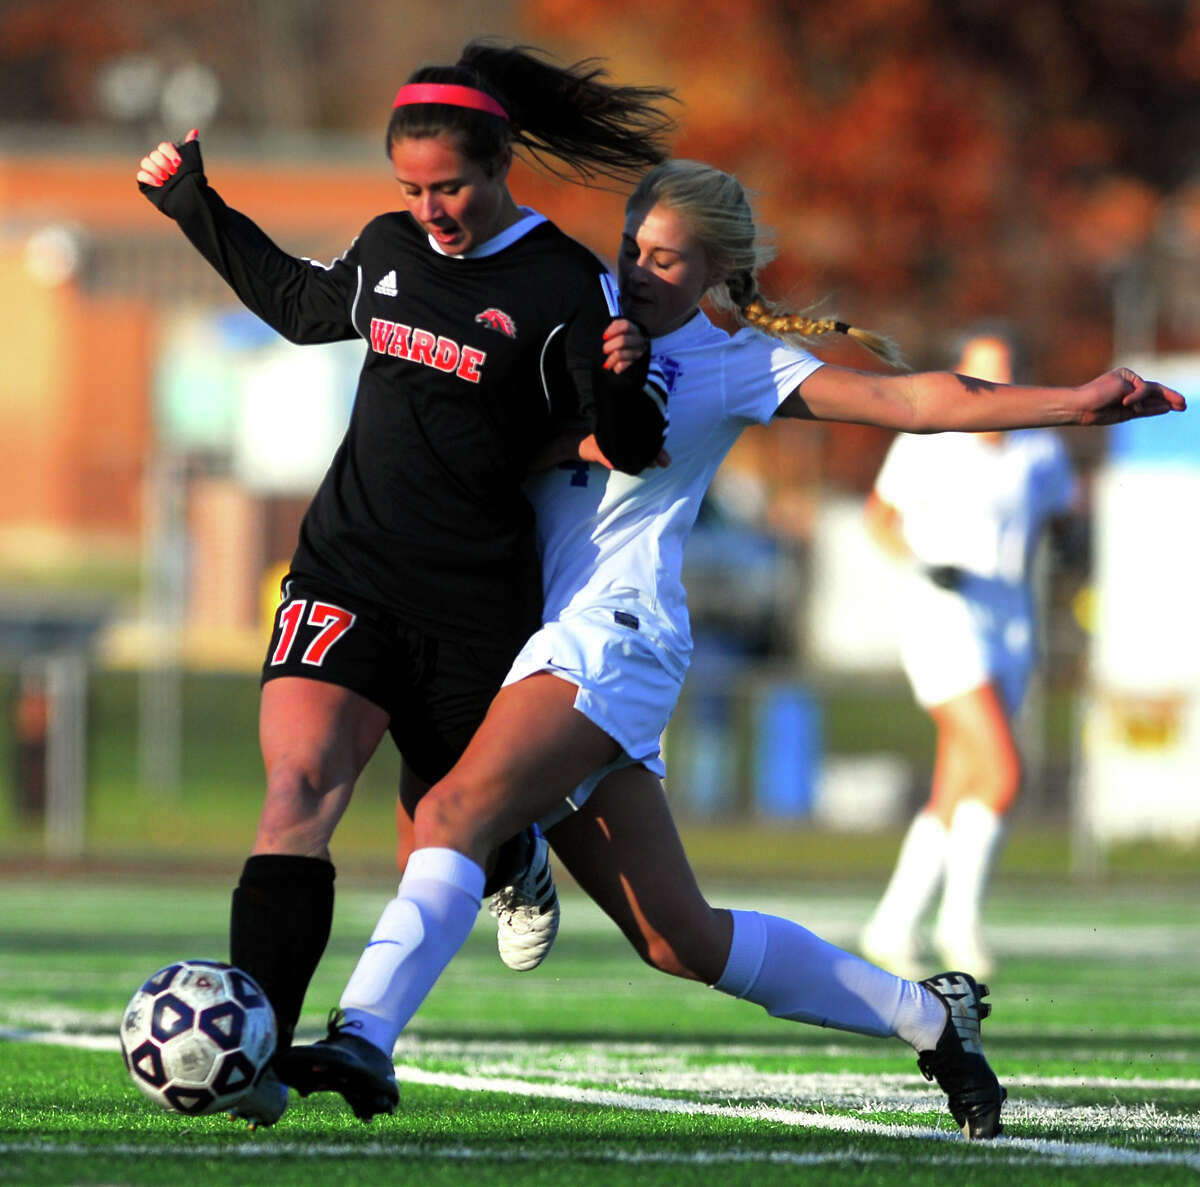 Warde's Alexa Montani (17) and Glastonbury's Taylor Walker battle for possession during the CIAC Class LL girls' soccer state championship at Ken Strong Stadium in West Haven on November 15. The Mustangs lost 2-1 in double overtime.